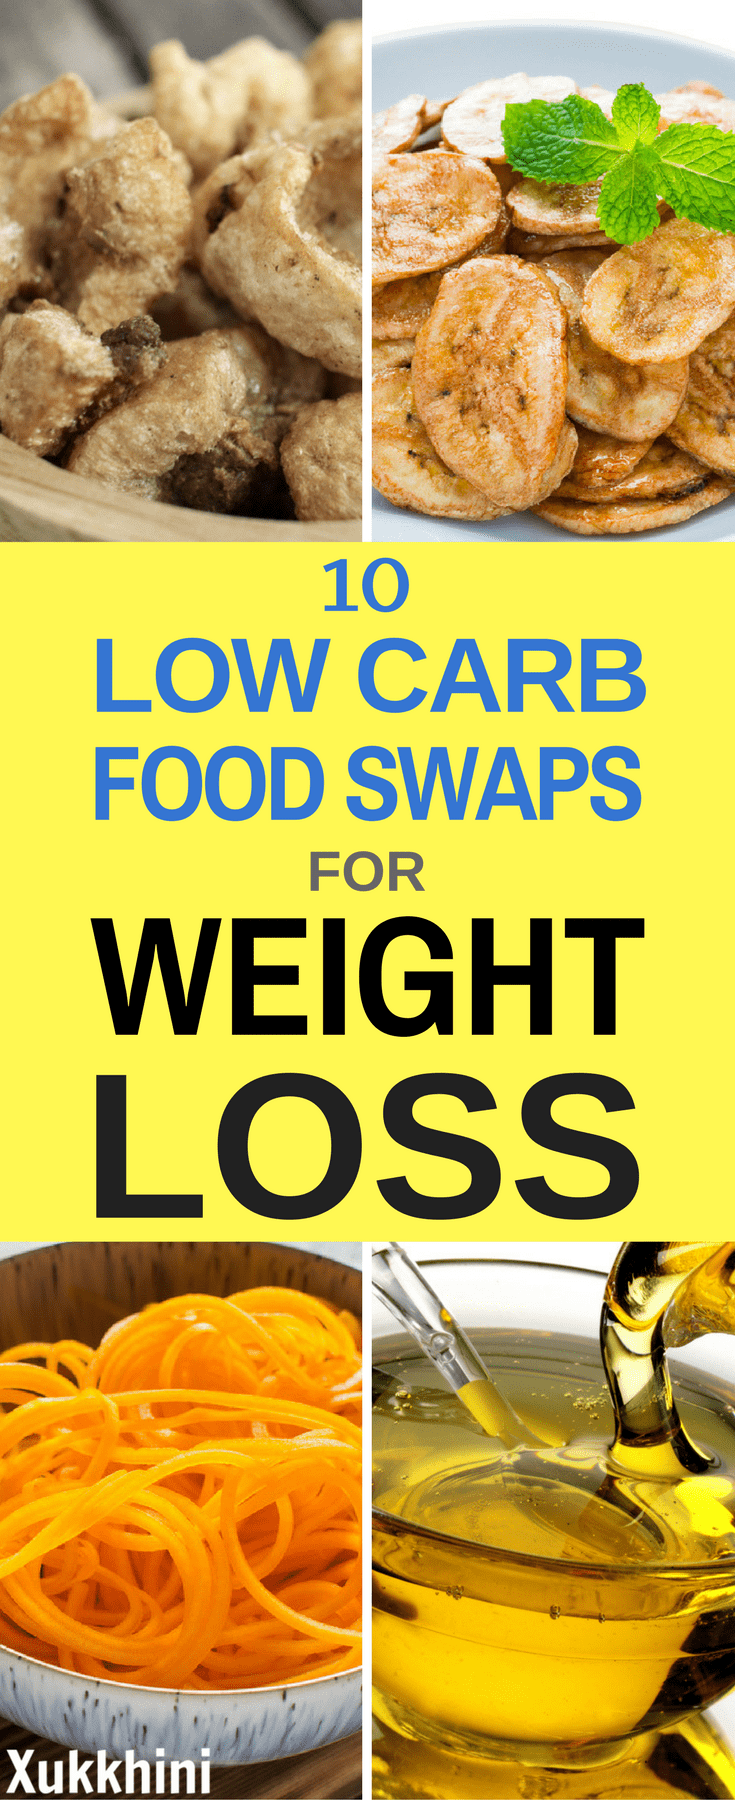 10 low carb food swaps to help you lose weight food swap calorie 10 low carb food swaps to help you lose weight ccuart Images